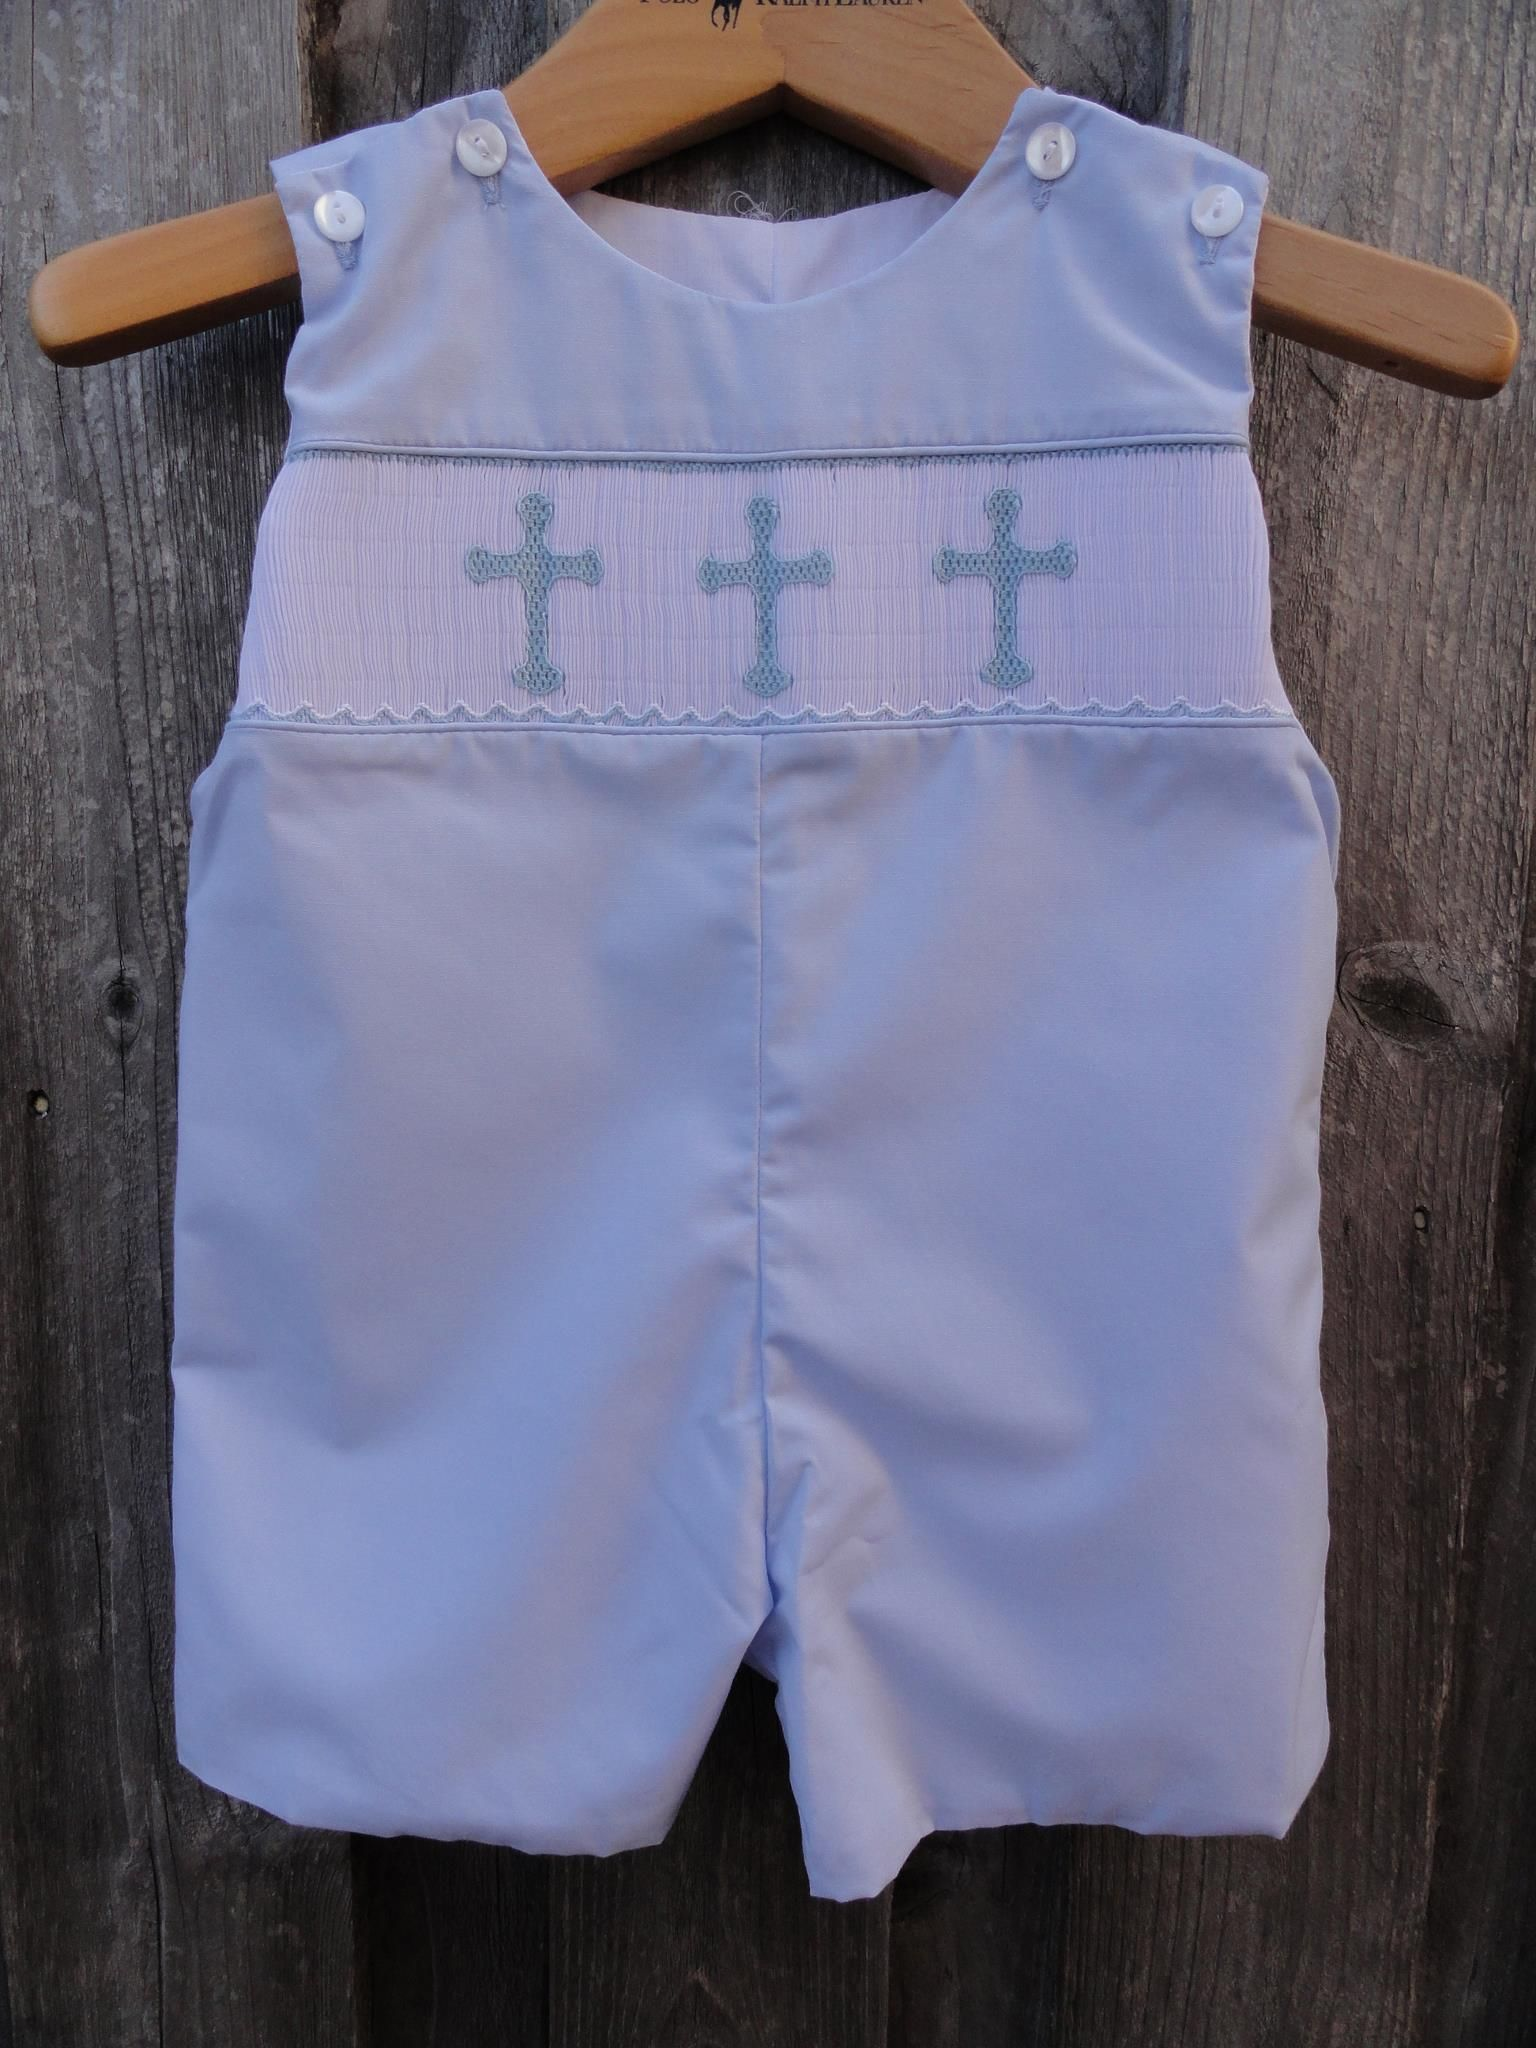 Cross Smocked Jon Jon Kids Clothes Pinterest